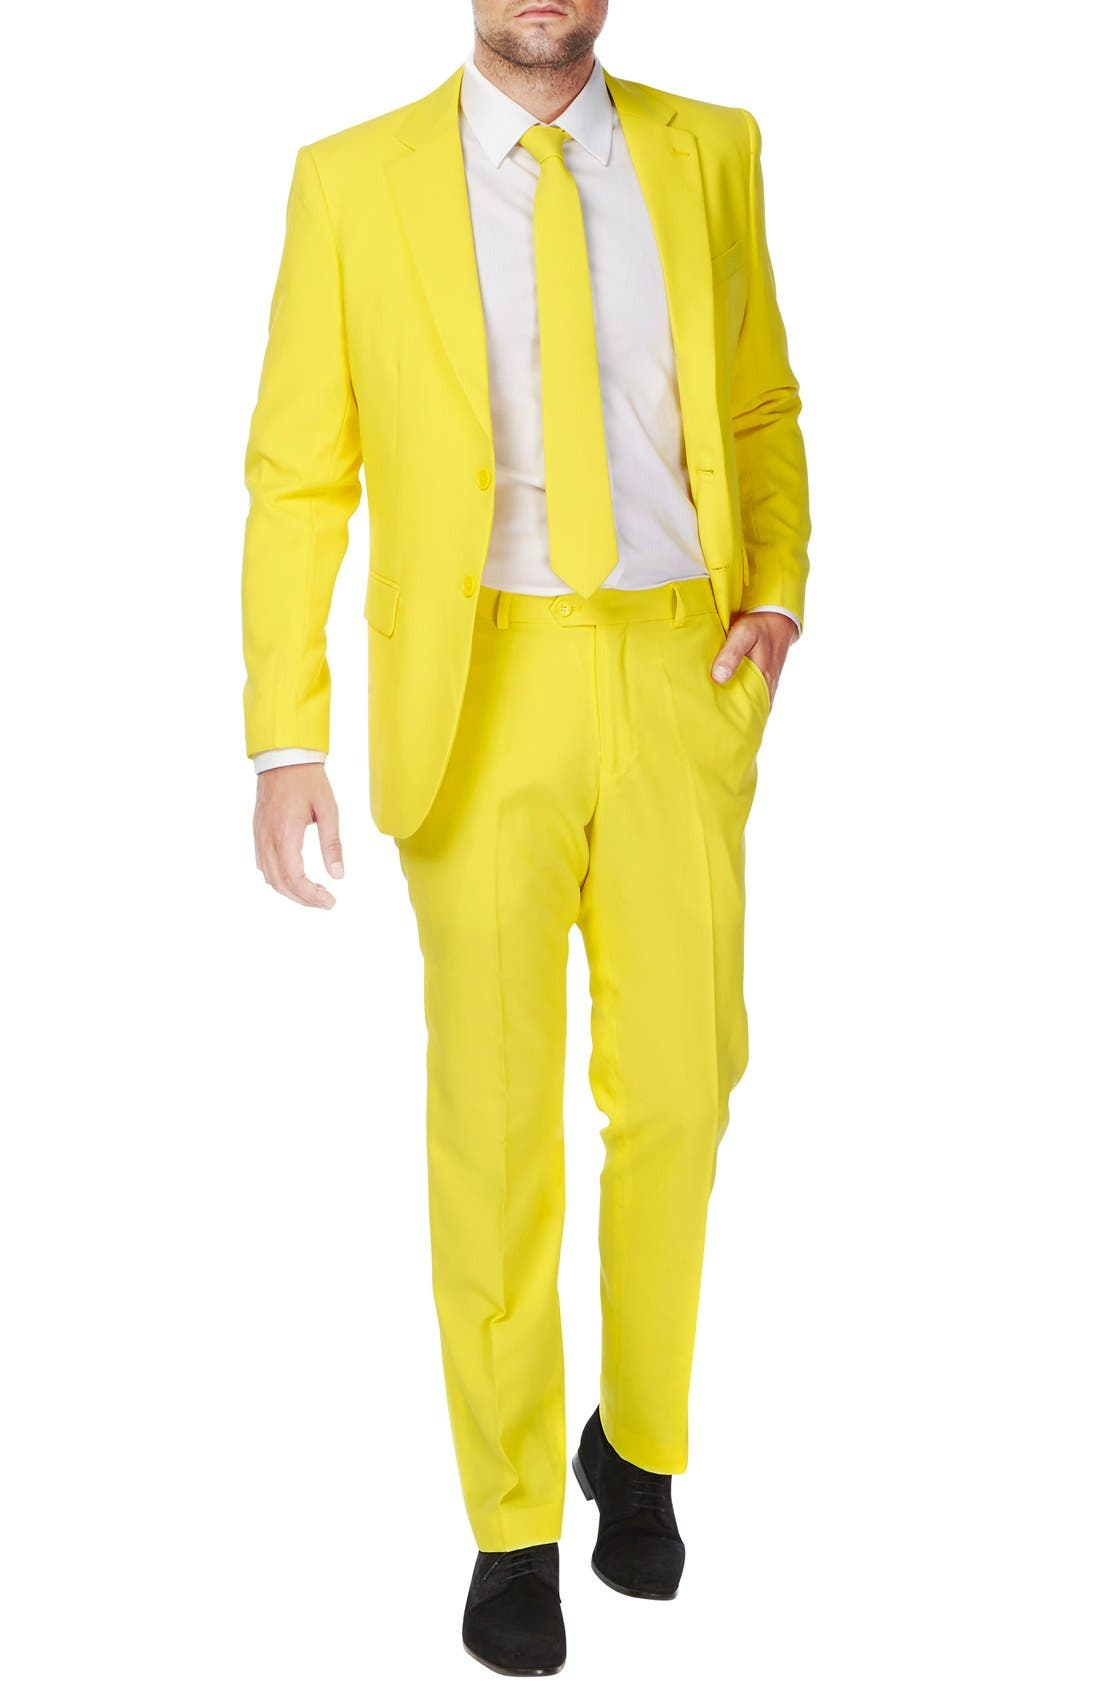 Alternate Image 1 Selected - OppoSuits 'Yellow Fellow' Trim Fit Two-Piece Suit with Tie